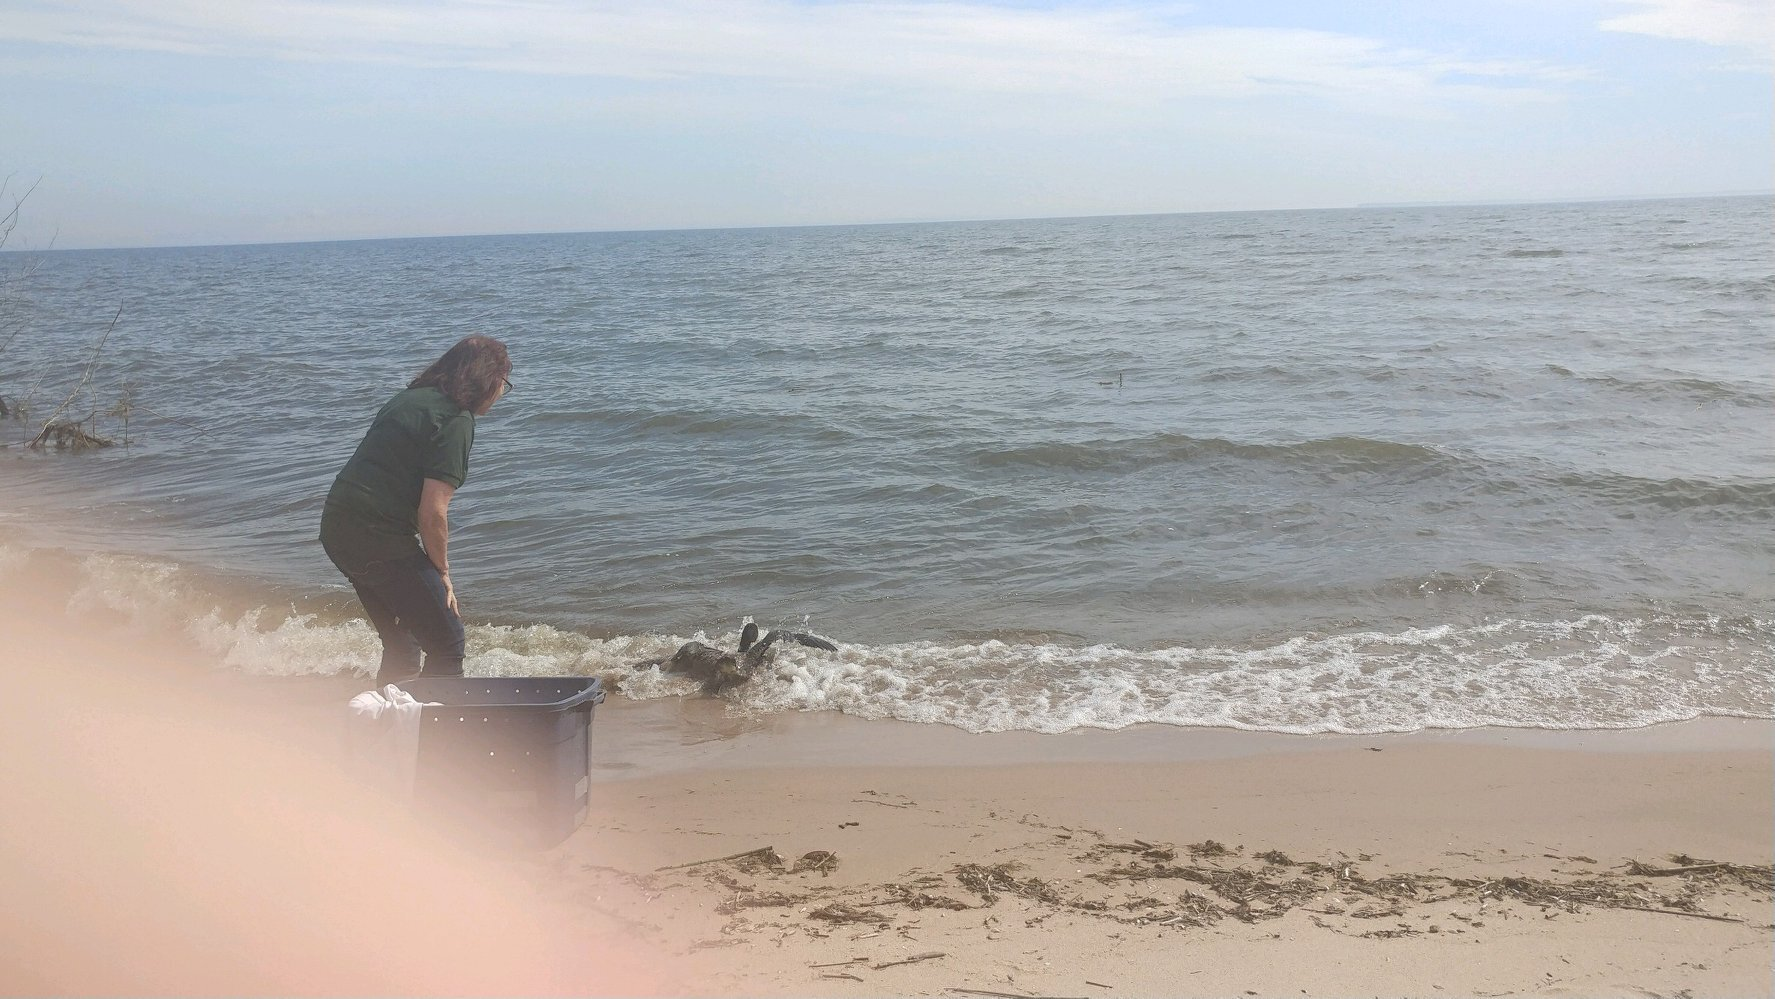 A jump out of the box into the waves was the loons reaction to hearing the water in front of her. EXCITED!